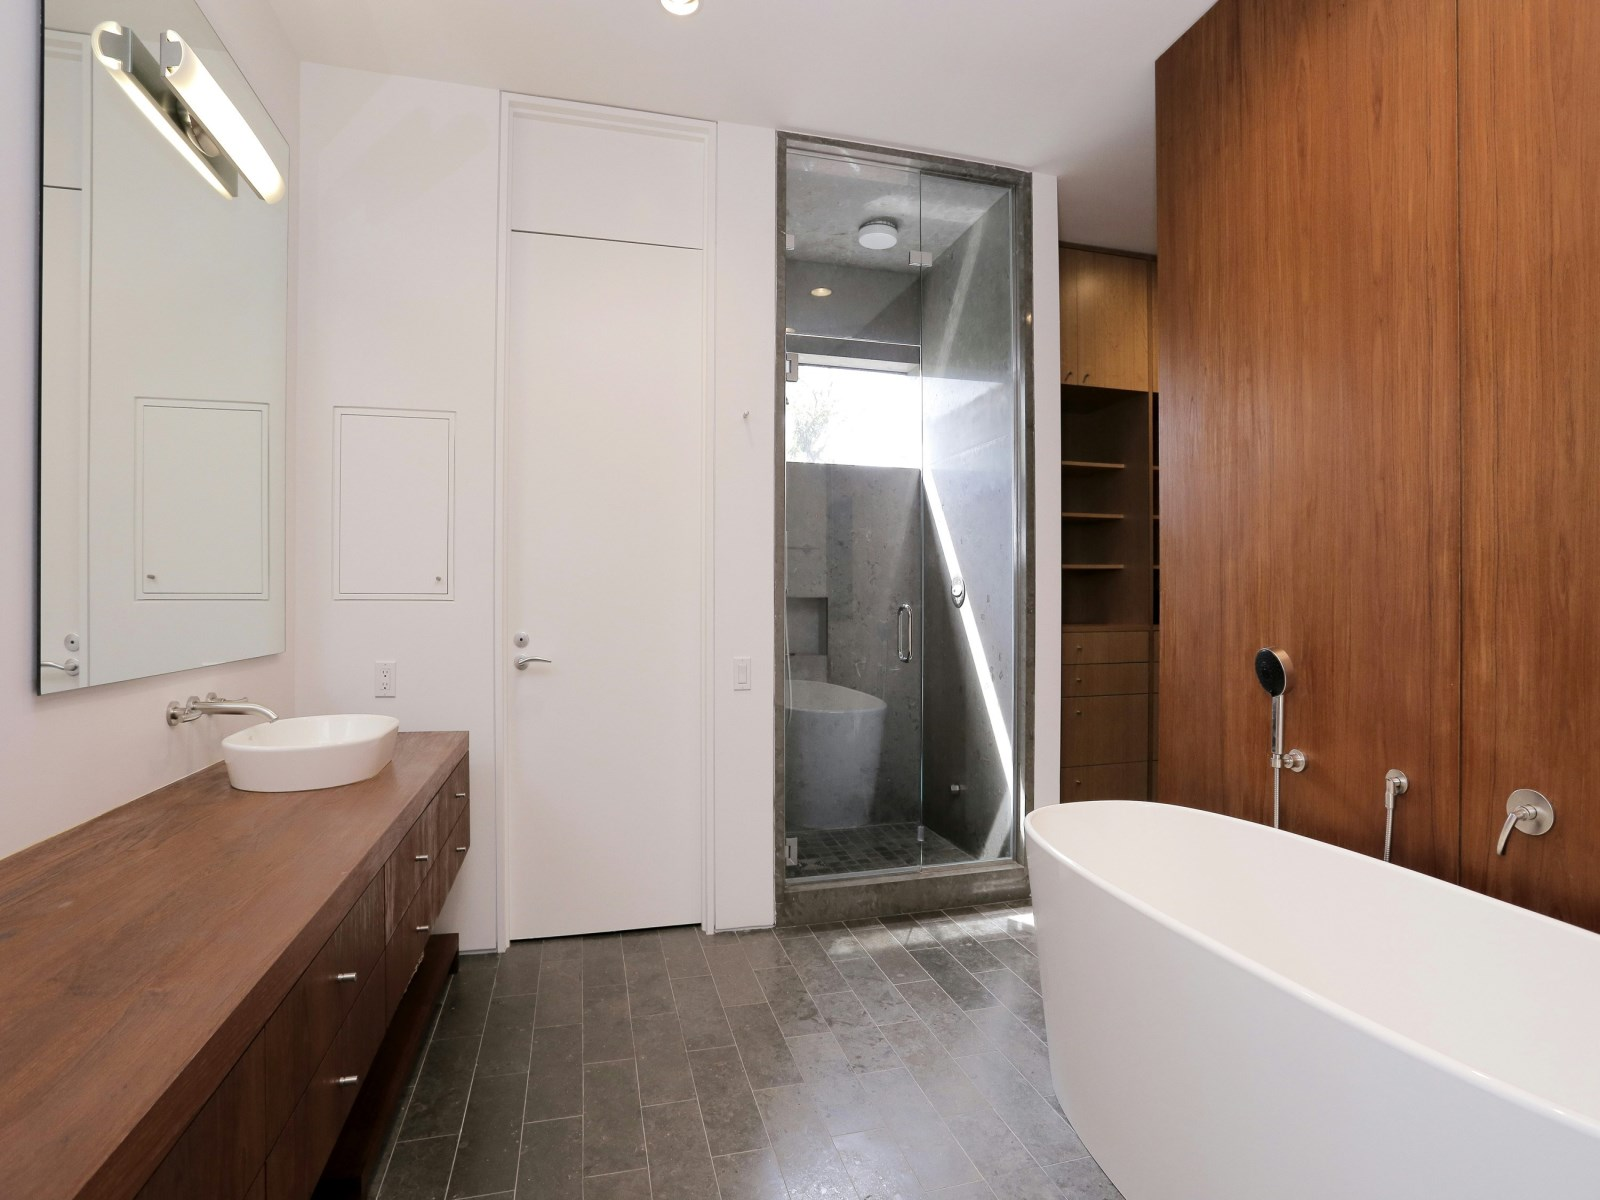 Relaxing Teak Bathroom - A home with formidable architecture and a light interior